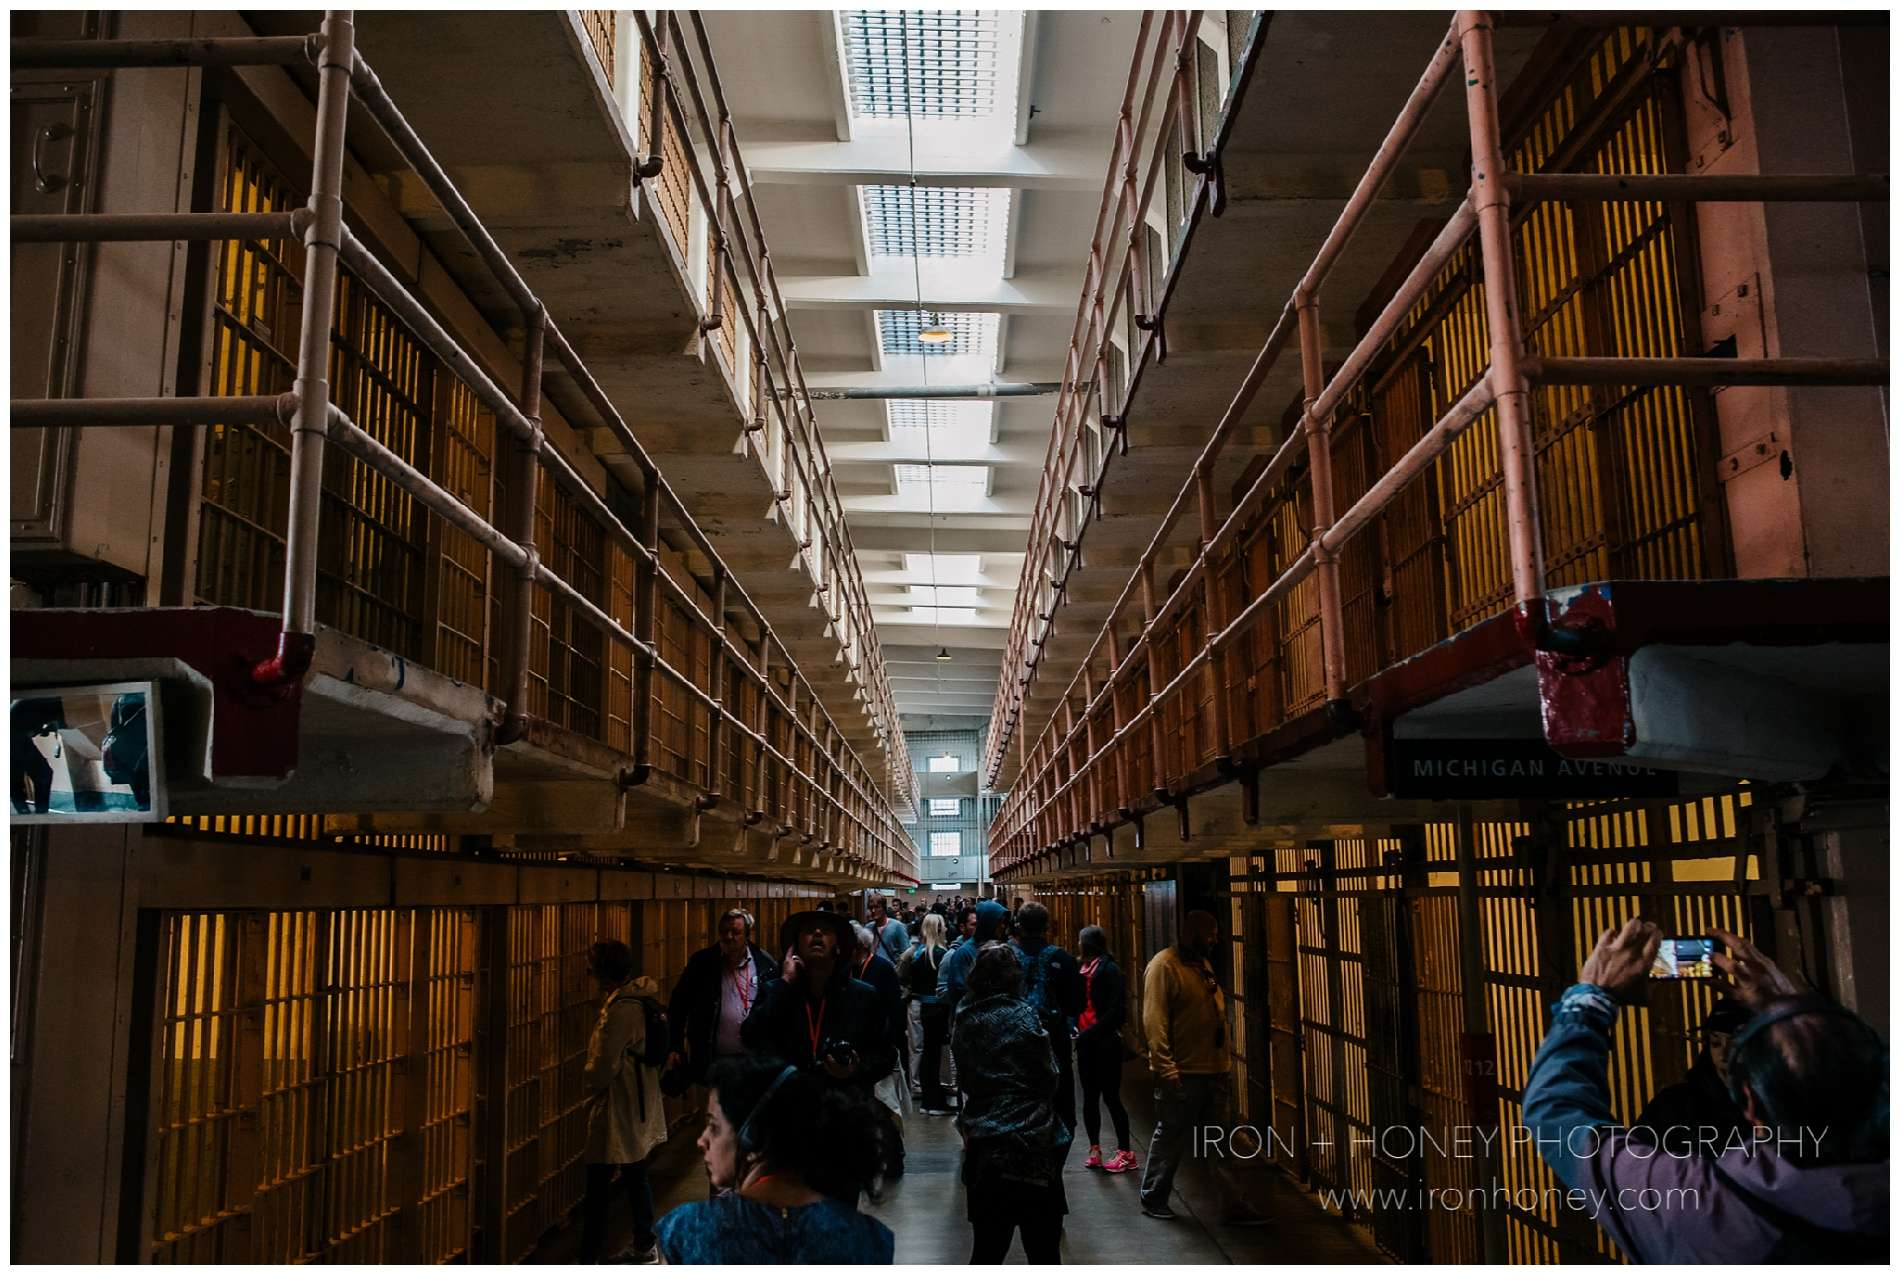 alcatraz, alcatraz island, the rock, san francisco, california, al capone, scarface, prison, tour, golden gate national recreation area, iron and honey, travel photography, tourist,